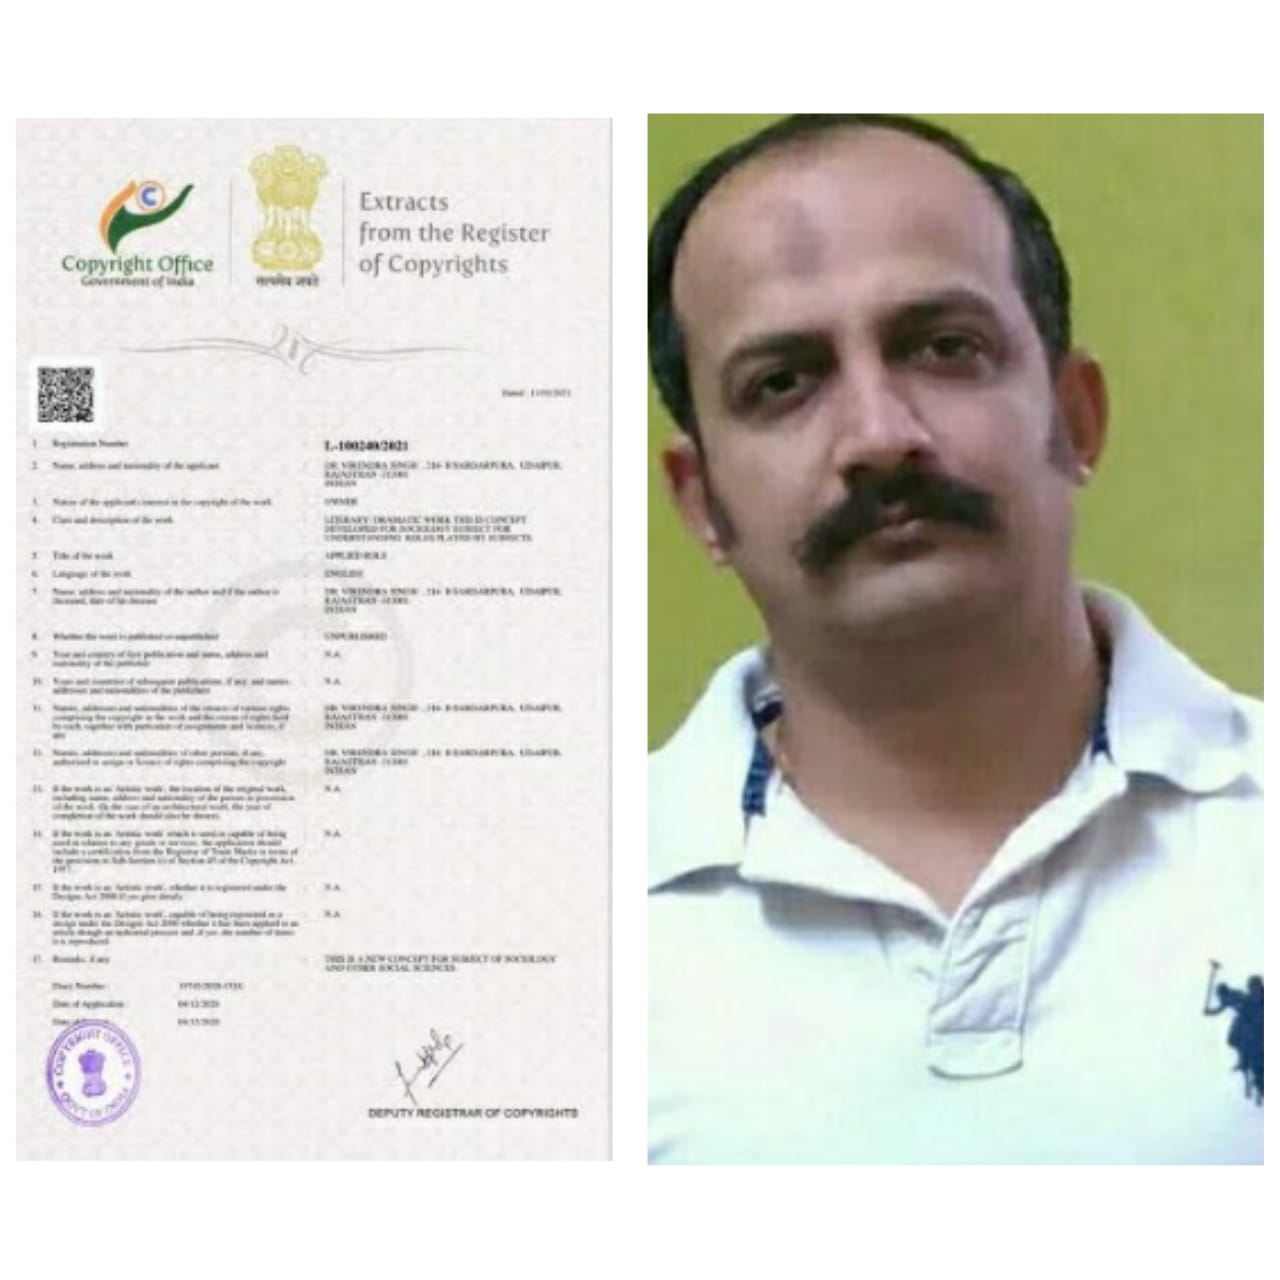 MSU Baroda teacher have 4th Copyright registered for Applied Role under subject of Sociology